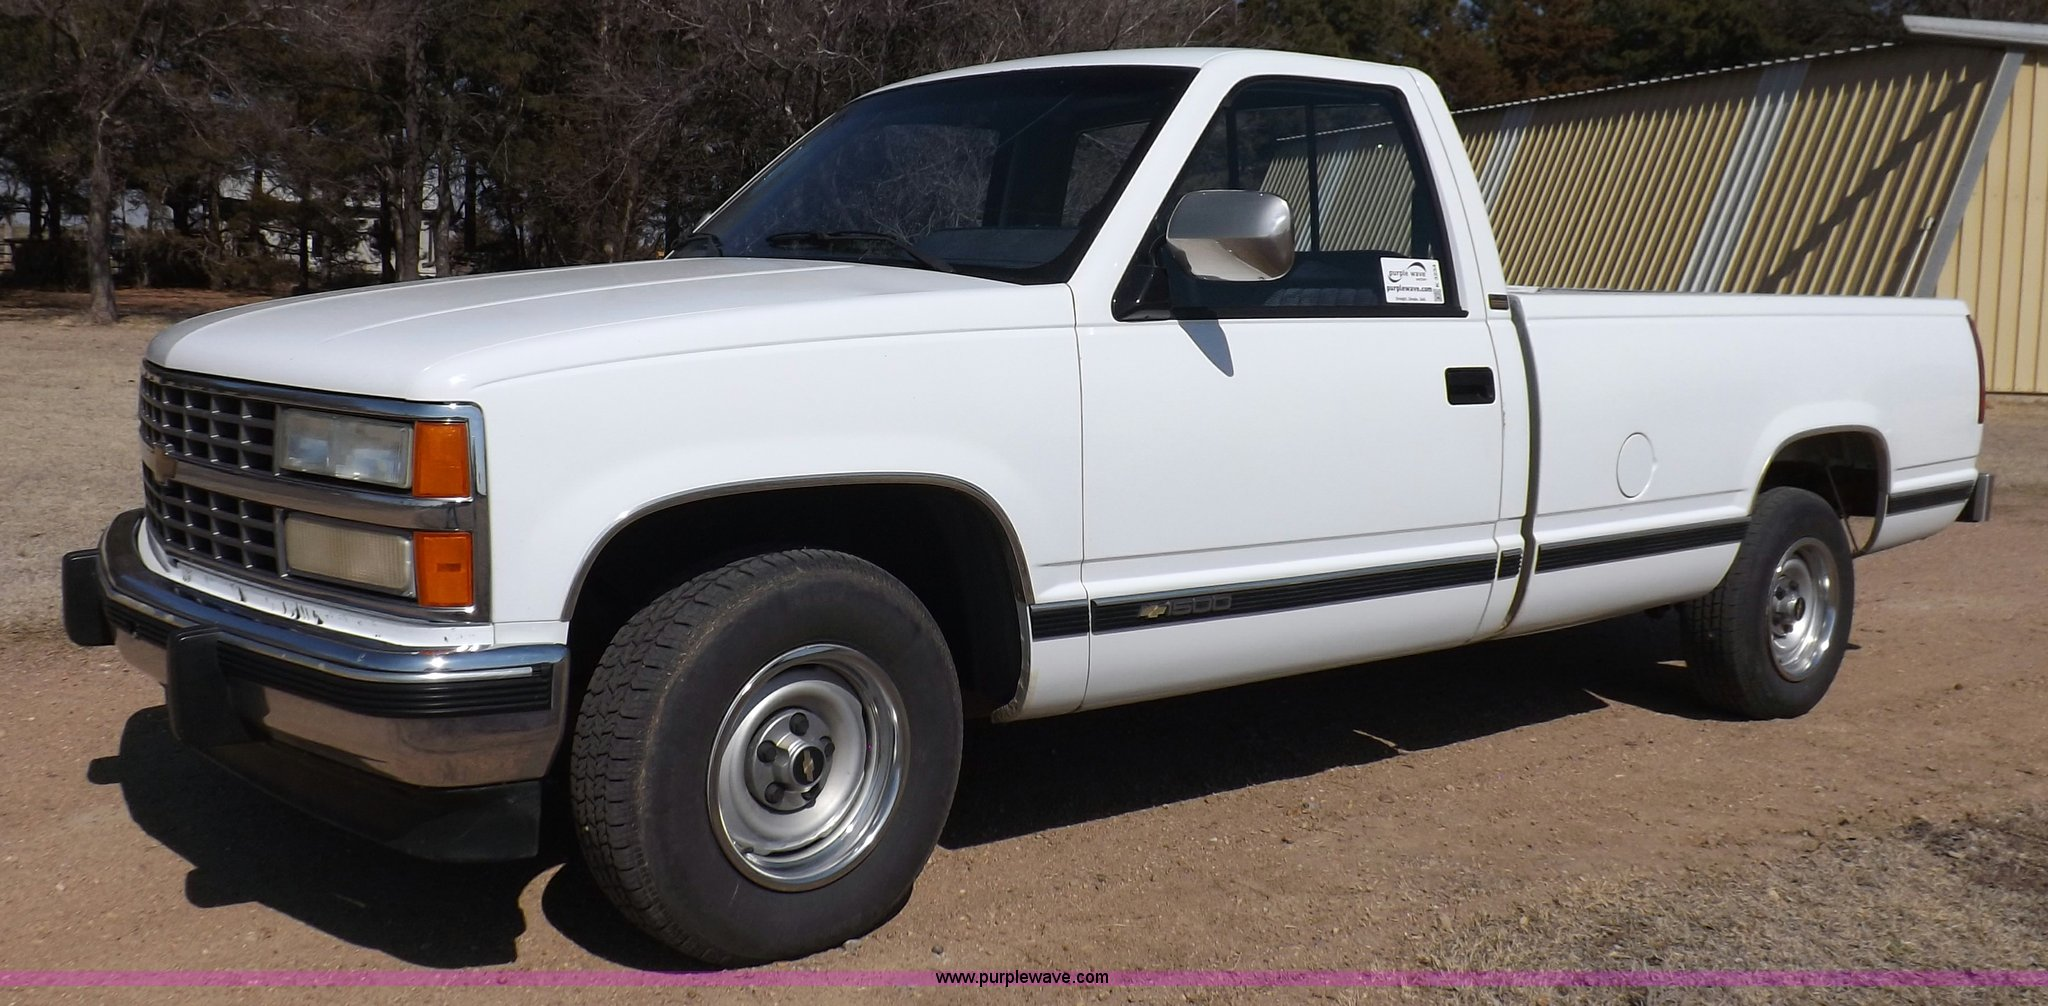 1990 chevrolet silverado 1500 pickup truck | item k3234 | so